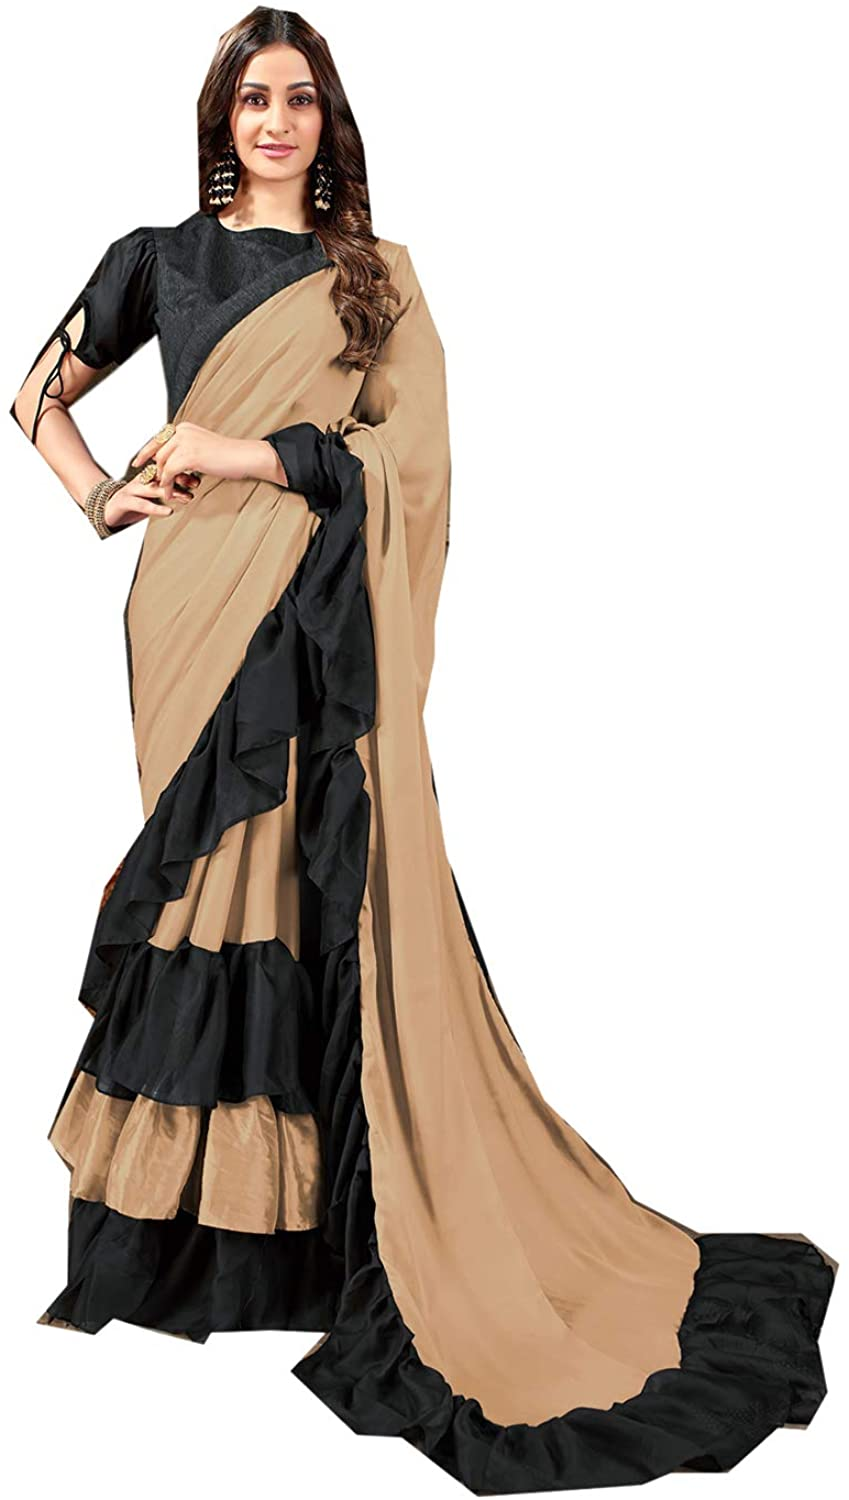 Saree for Women Bollywood Wedding Designer Rangoli Georgette Sari with Unstitched Blouse. Beige